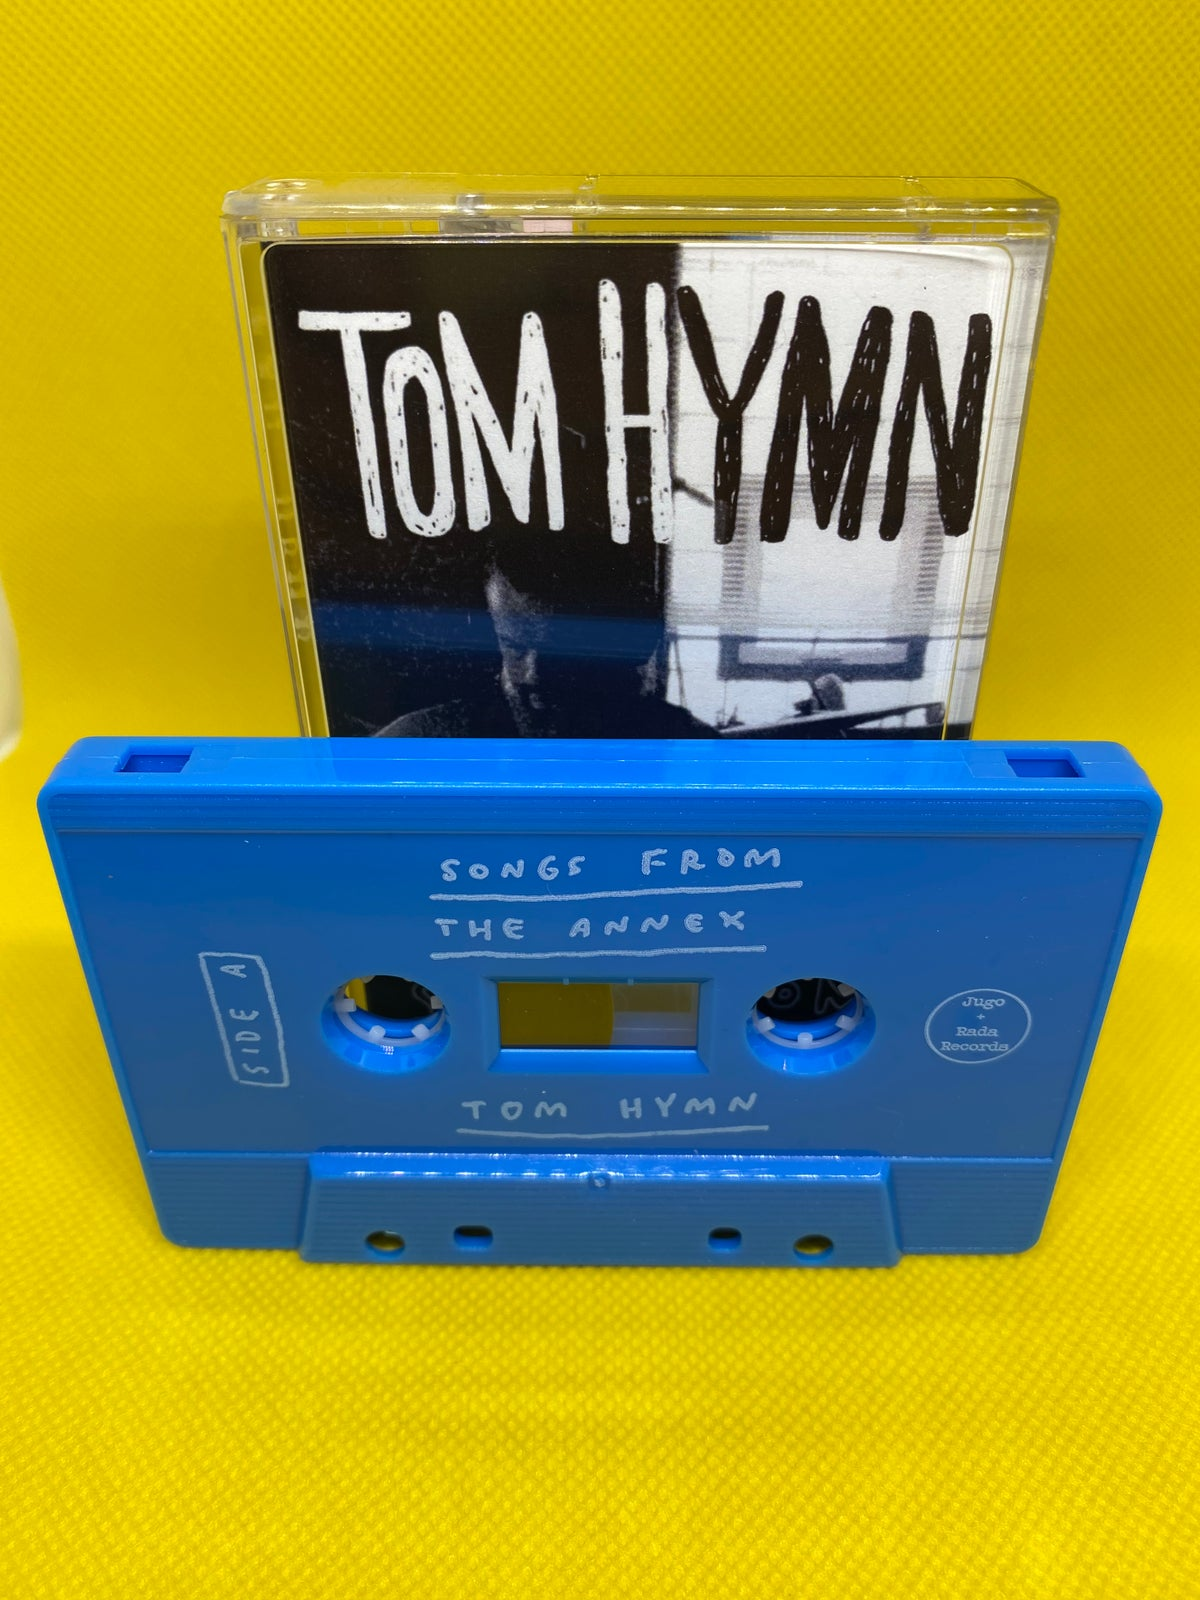 Tom Hymn - Songs From the Annex